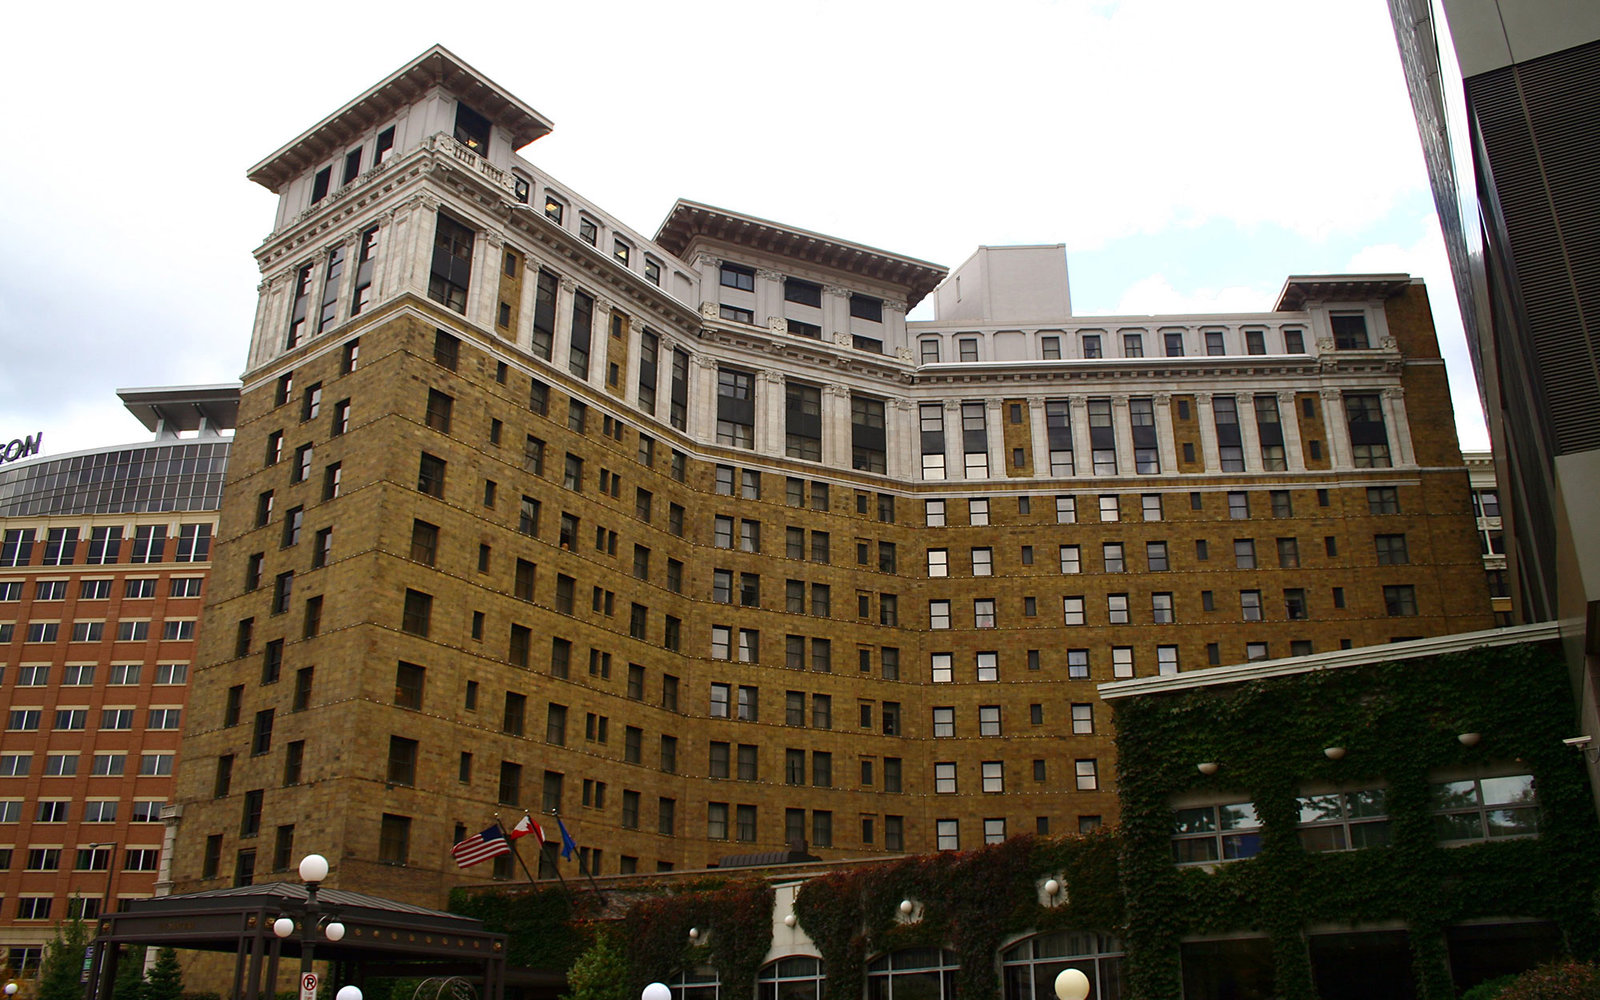 Minnesota: The Saint Paul Hotel